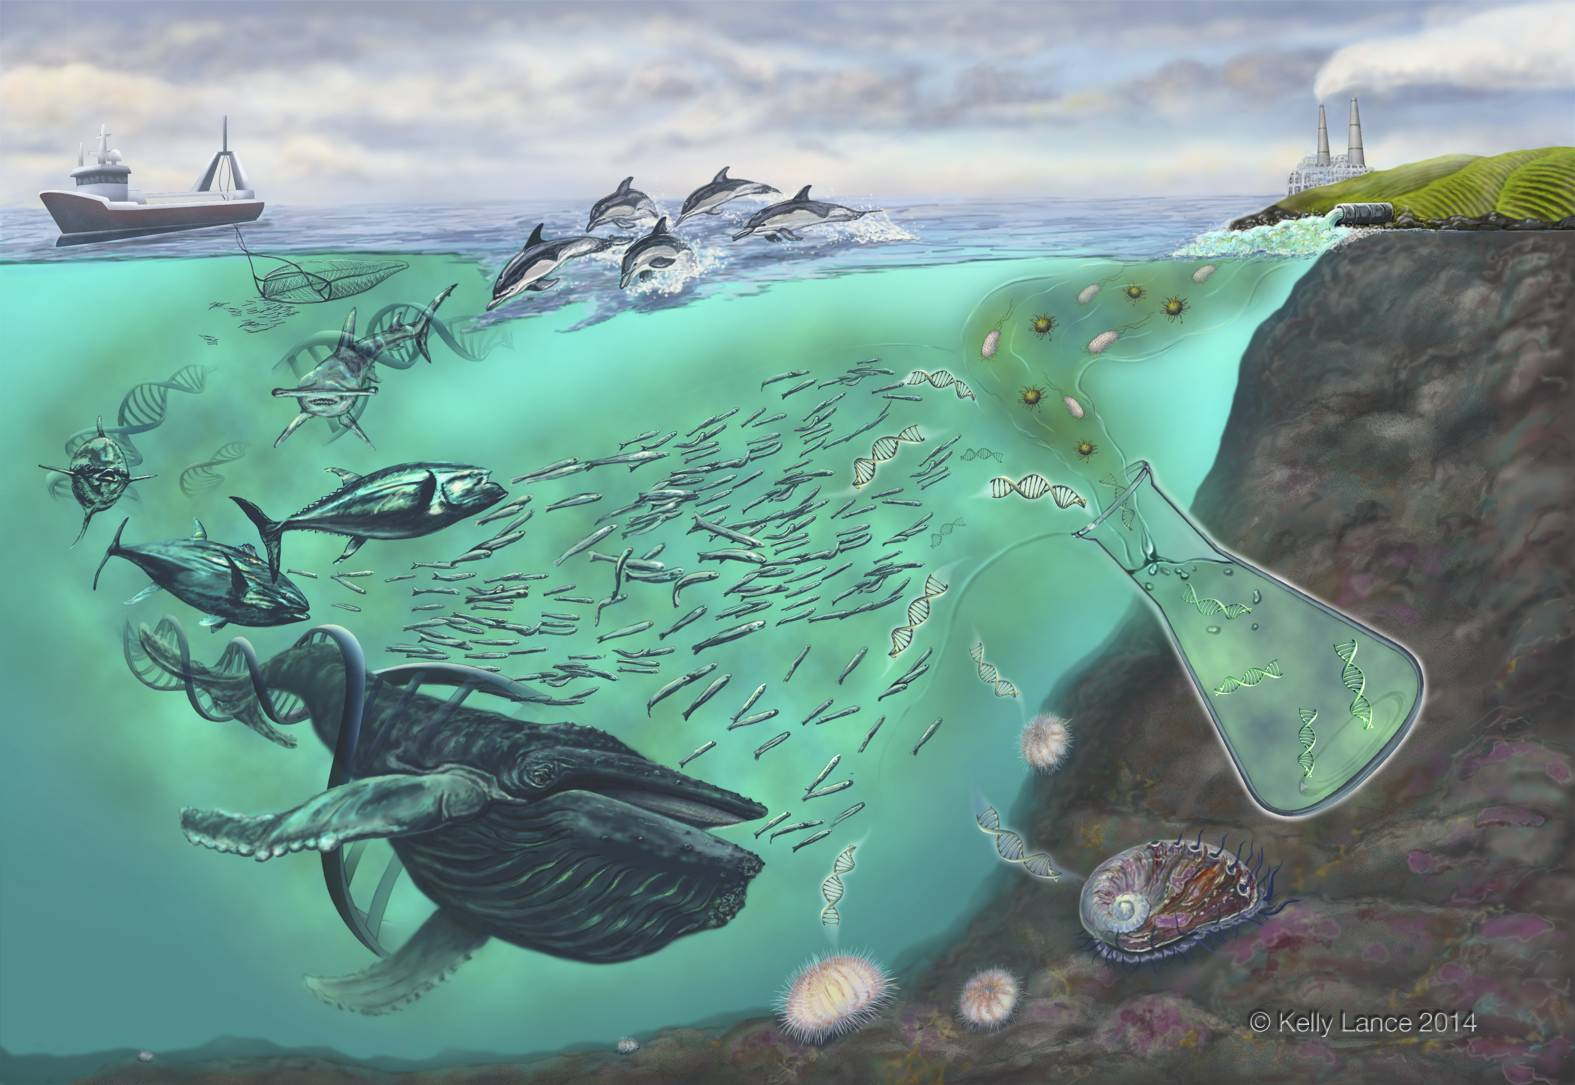 Through eDNA, a sample of seawater can yield information about who is living in nearby waters. (graphic: Kelly Lance)